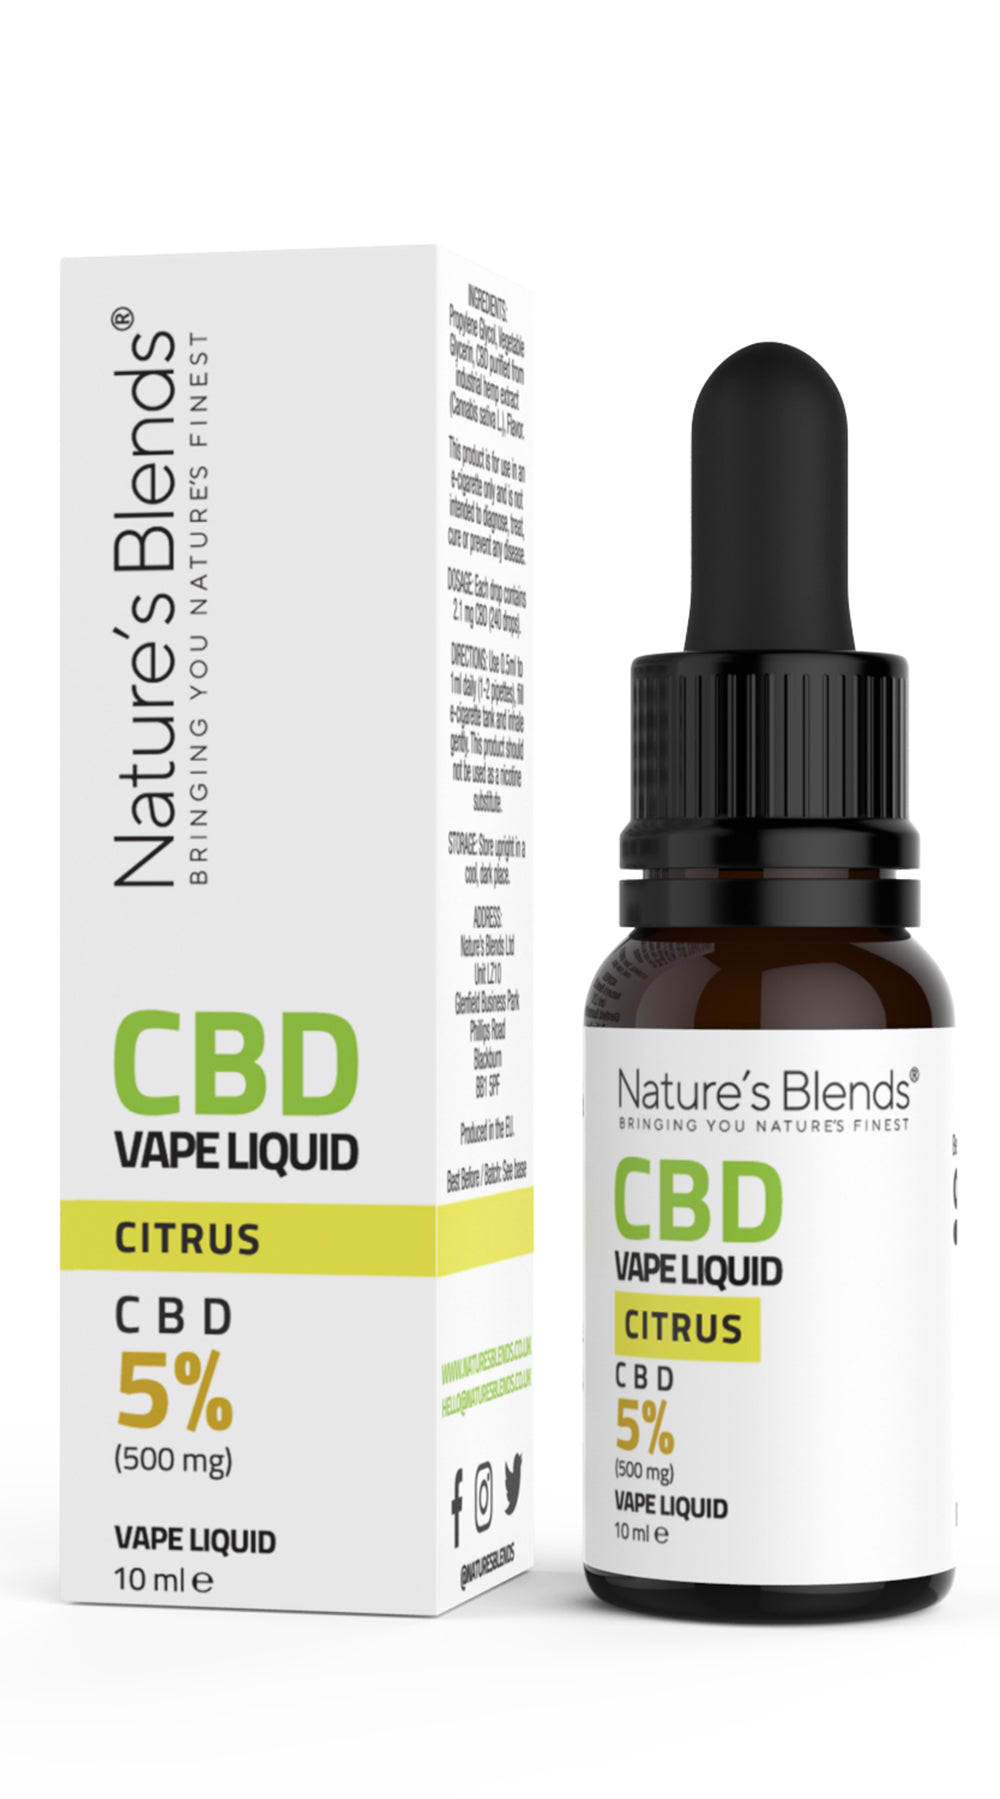 A 10ml bottle of 500mg cbd vape citrus flavour along side natures blends packaging